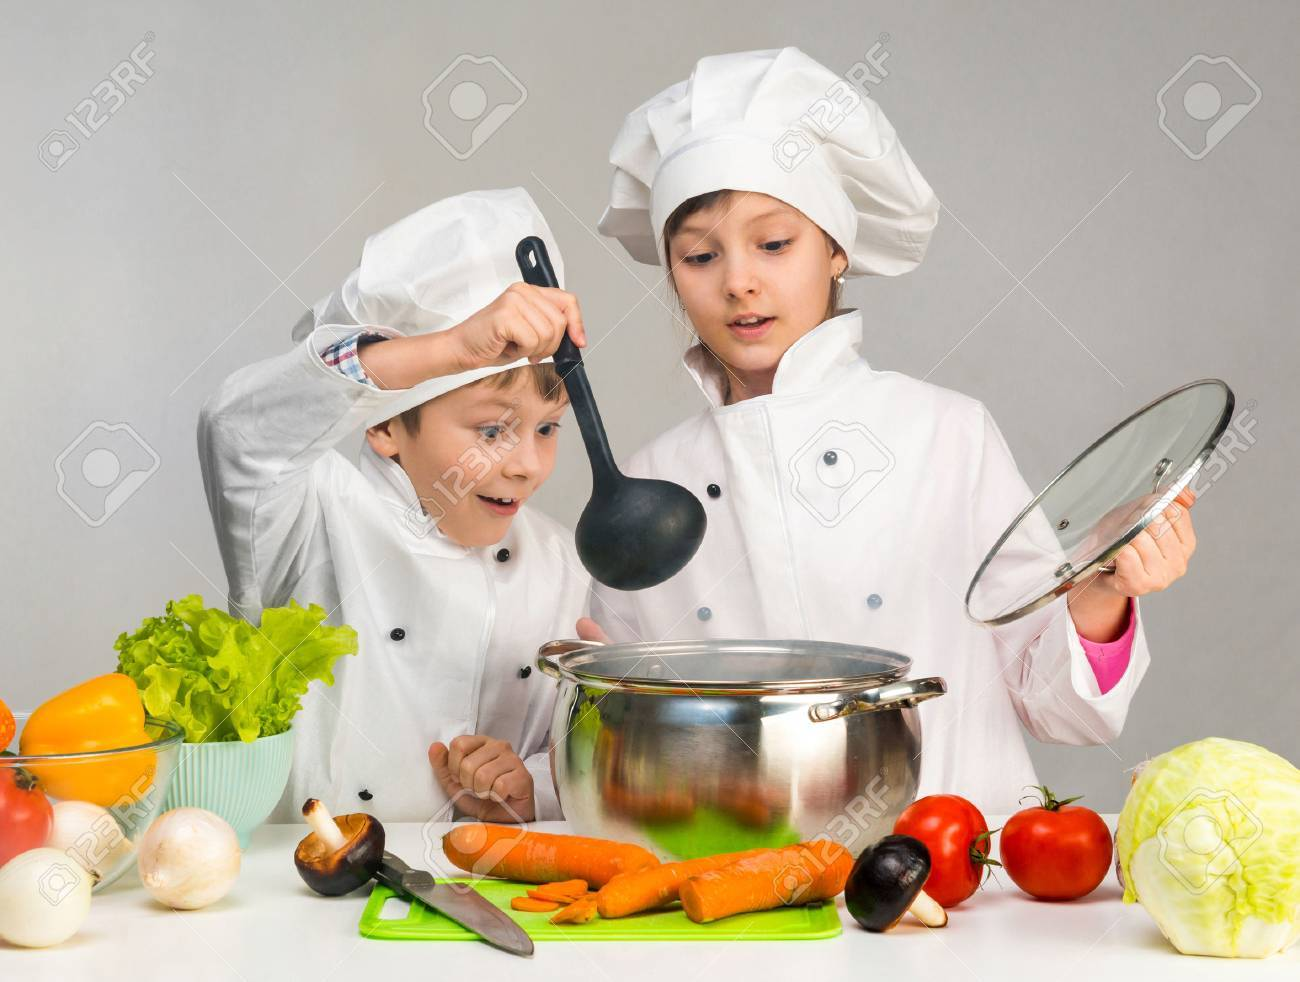 cooking little boy and girl looking in pan on table with vegetables - 61380381